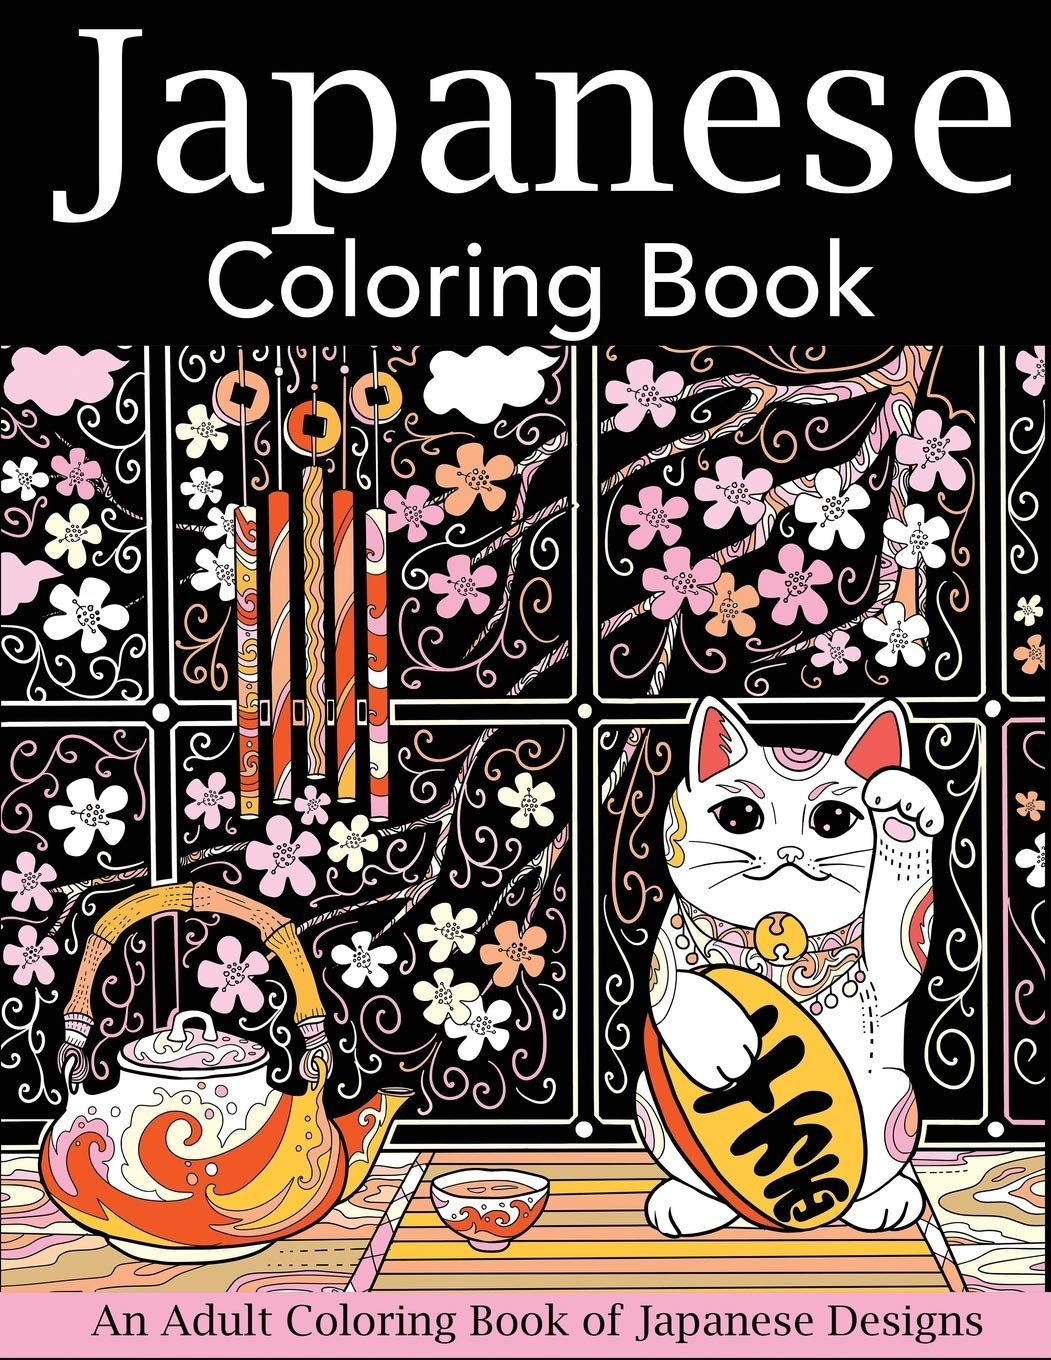 Amazon Com Japanese Coloring Book An Adult Coloring Book Of Japanese Designs Japan Coloring Book 9781947243613 Creative Coloring Books